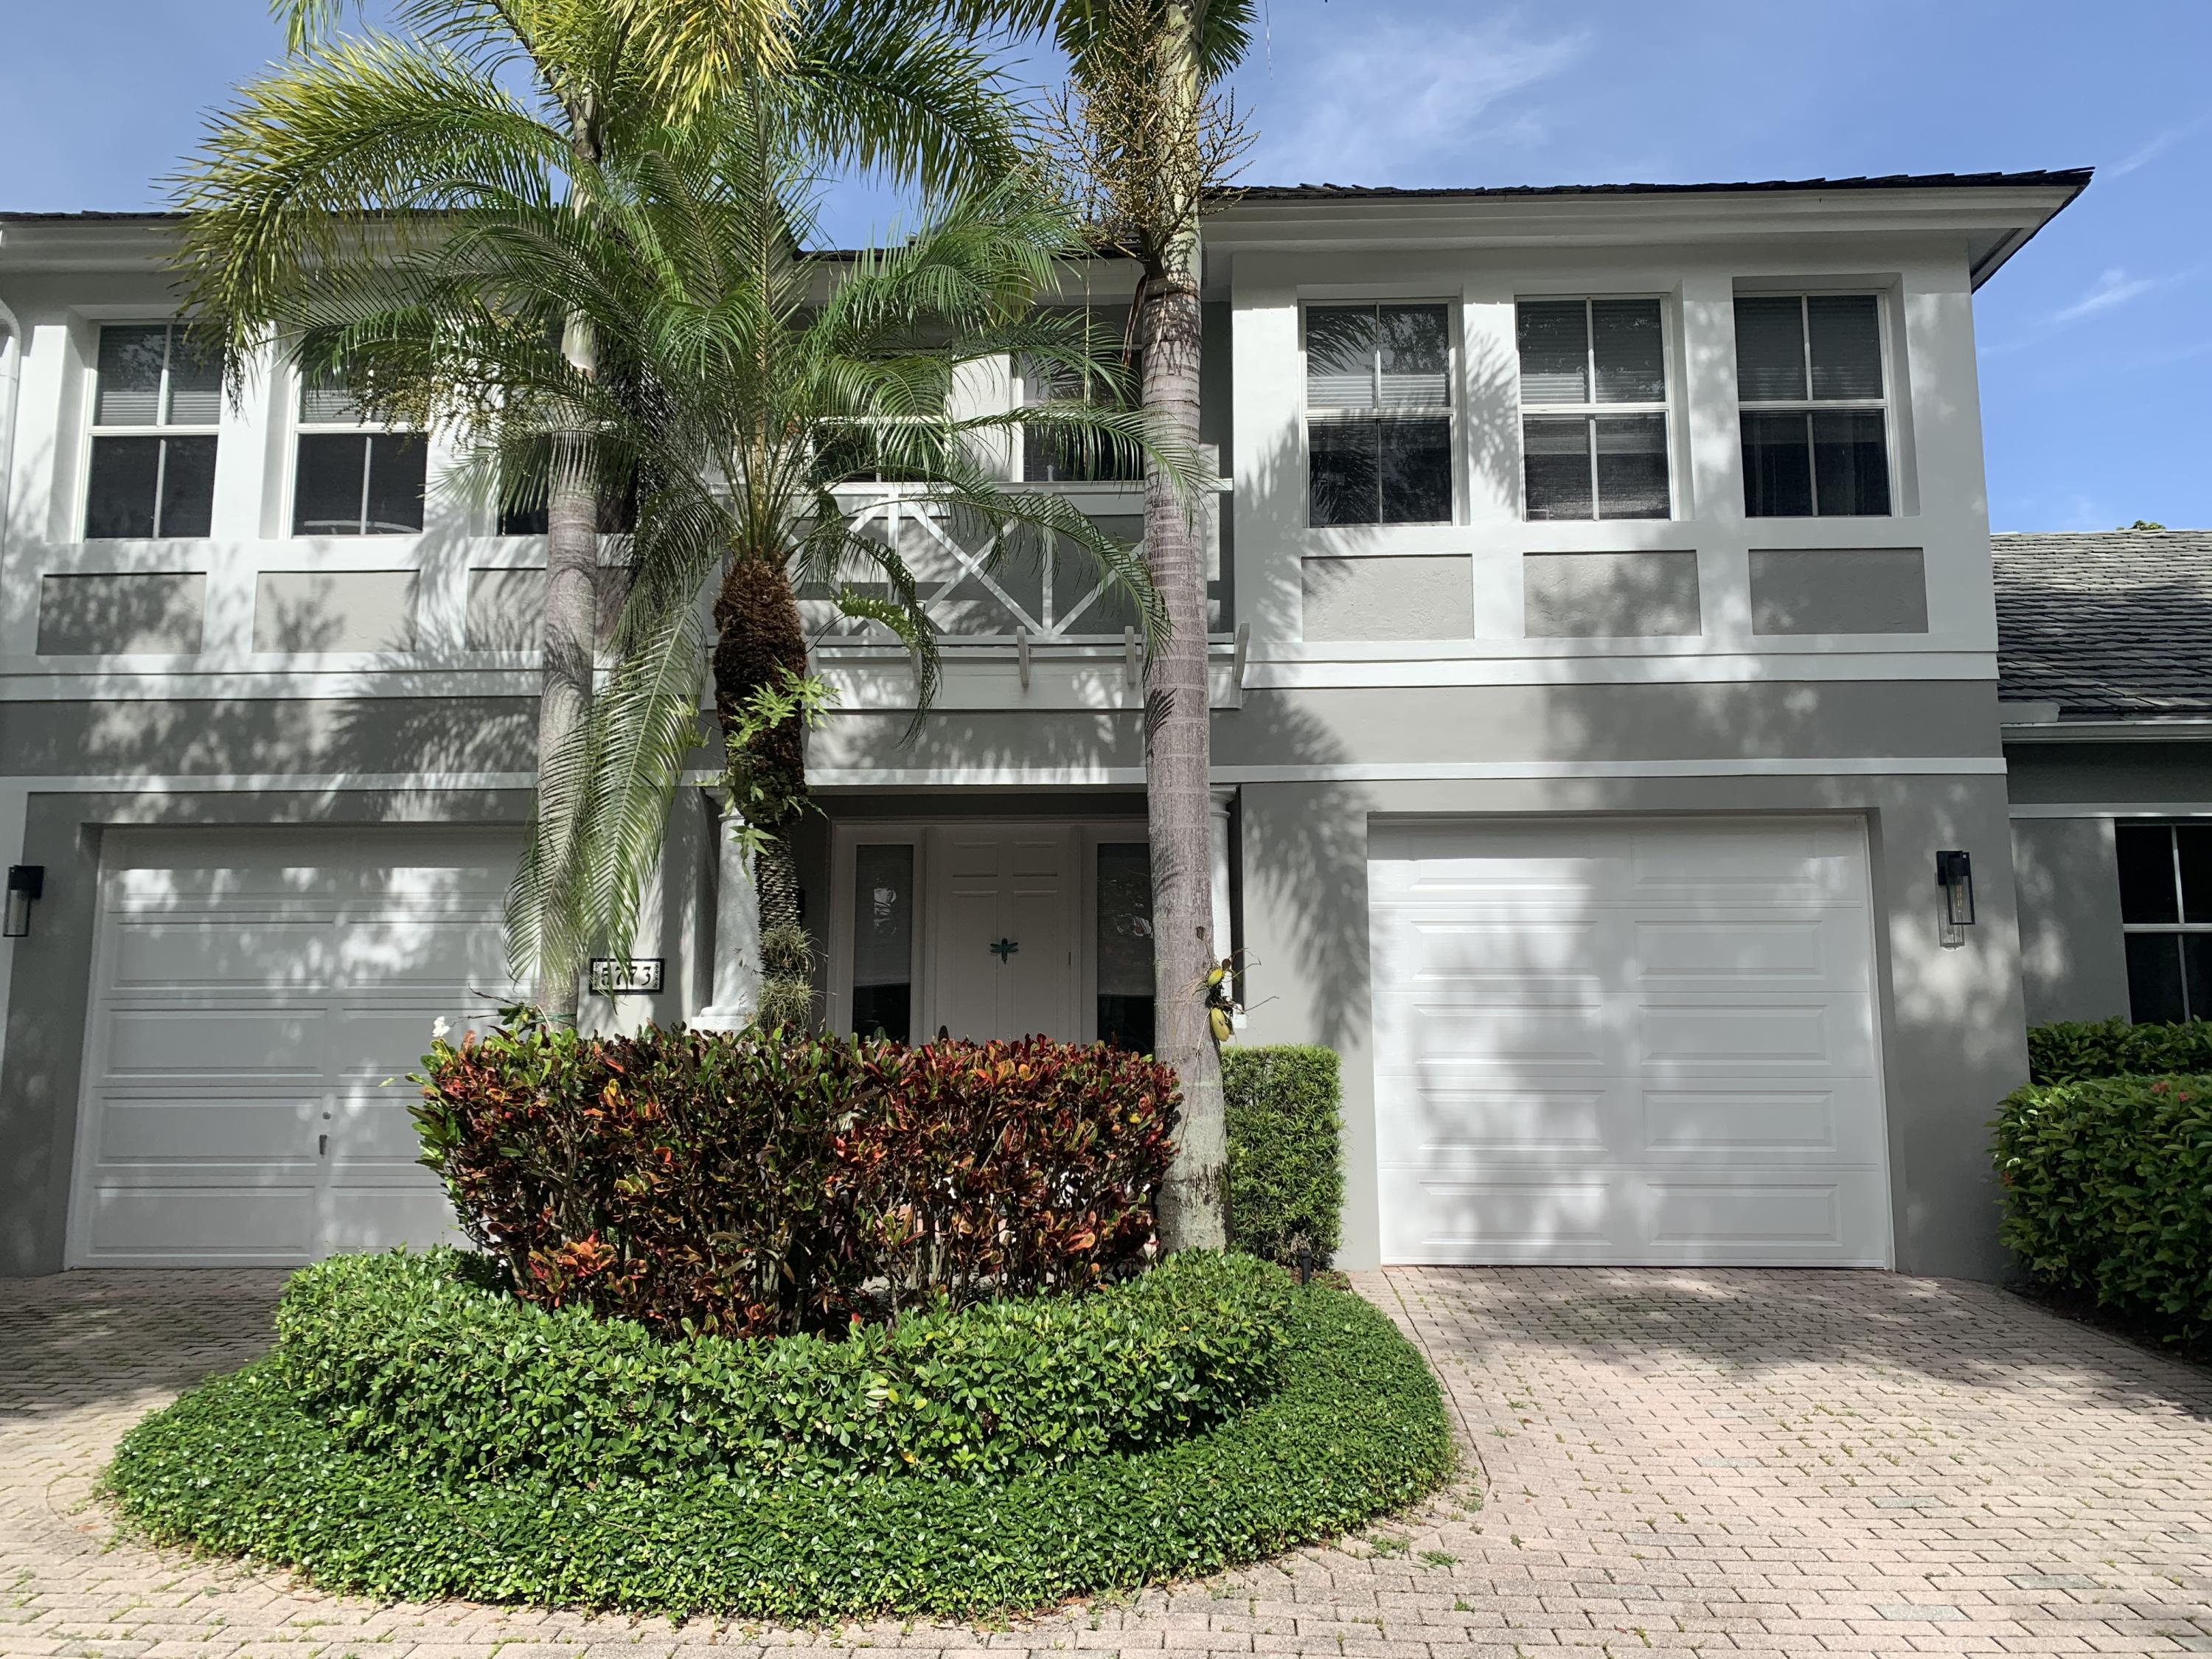 Home for sale in Woodfield County Club Boca Raton Florida